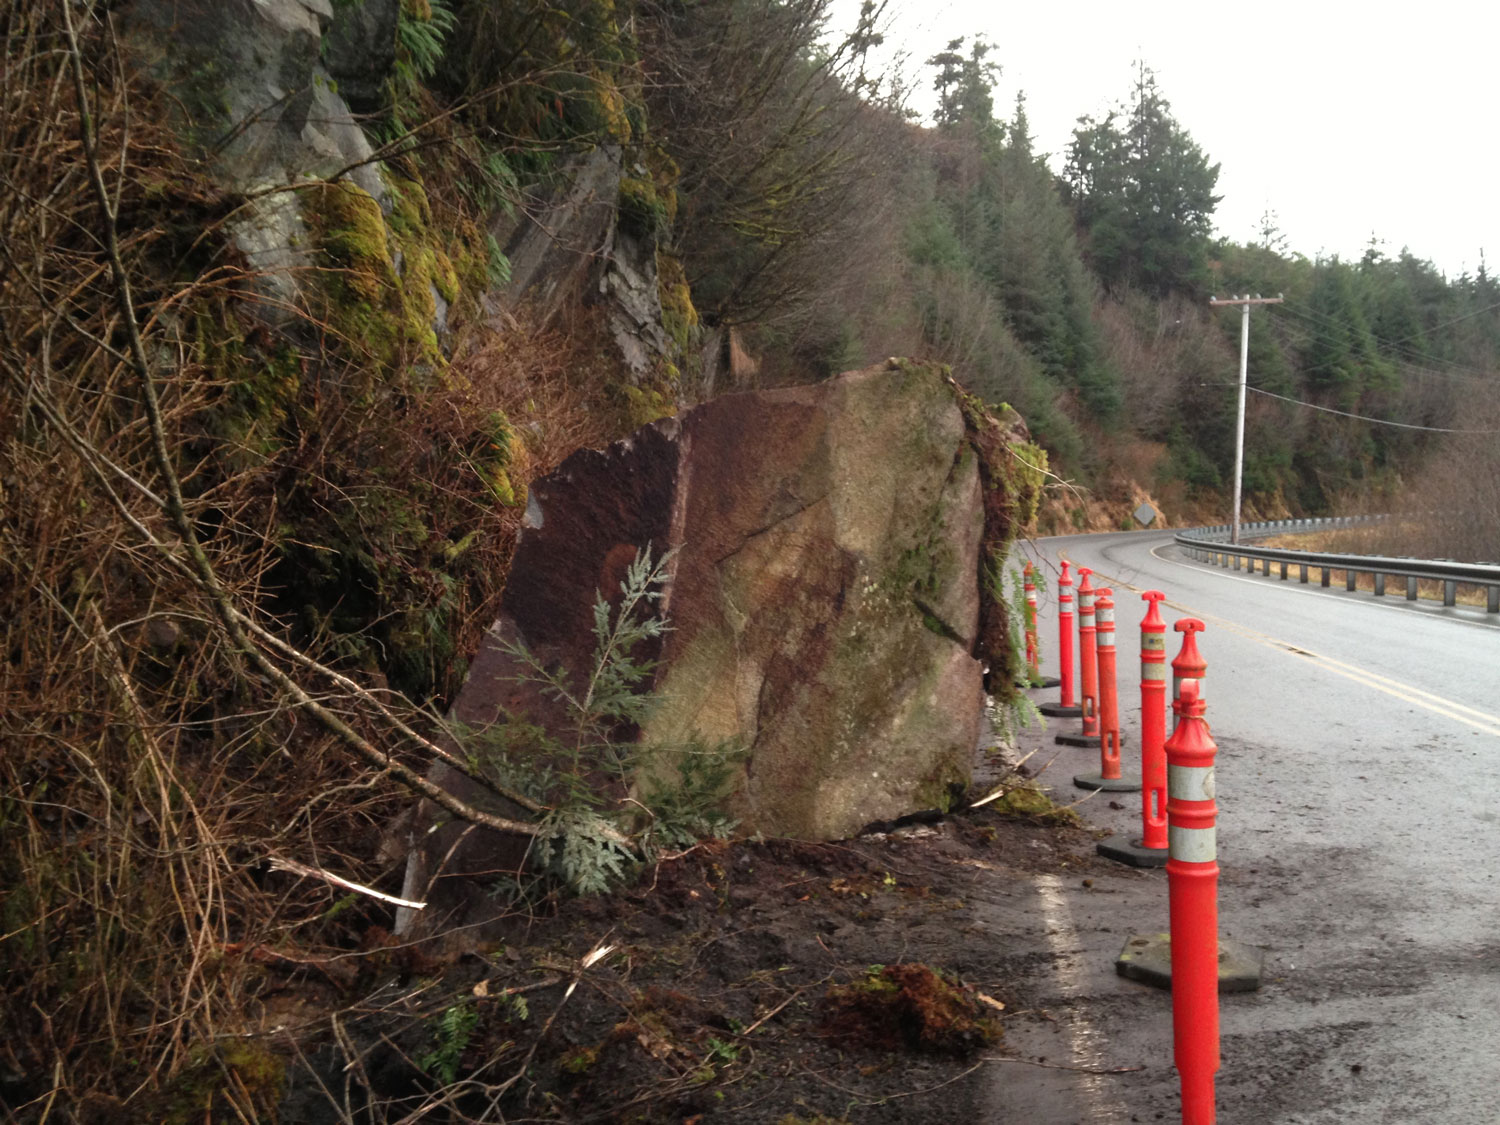 Huge rock fell onto road from cliff